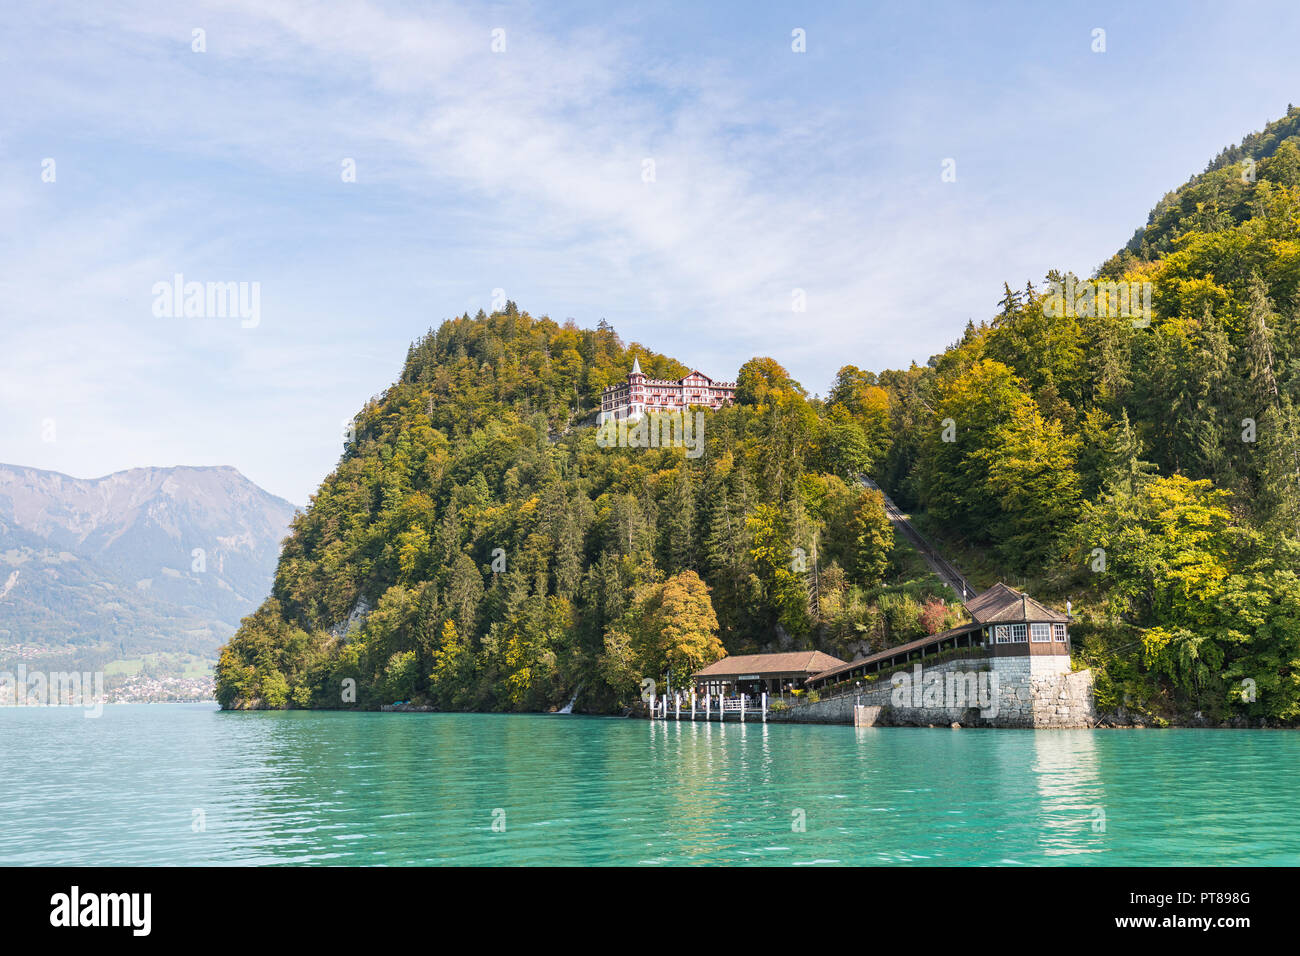 View from a boat over the turquoise lake Brienz to grand hotel giessbach in switzerland Stock Photo